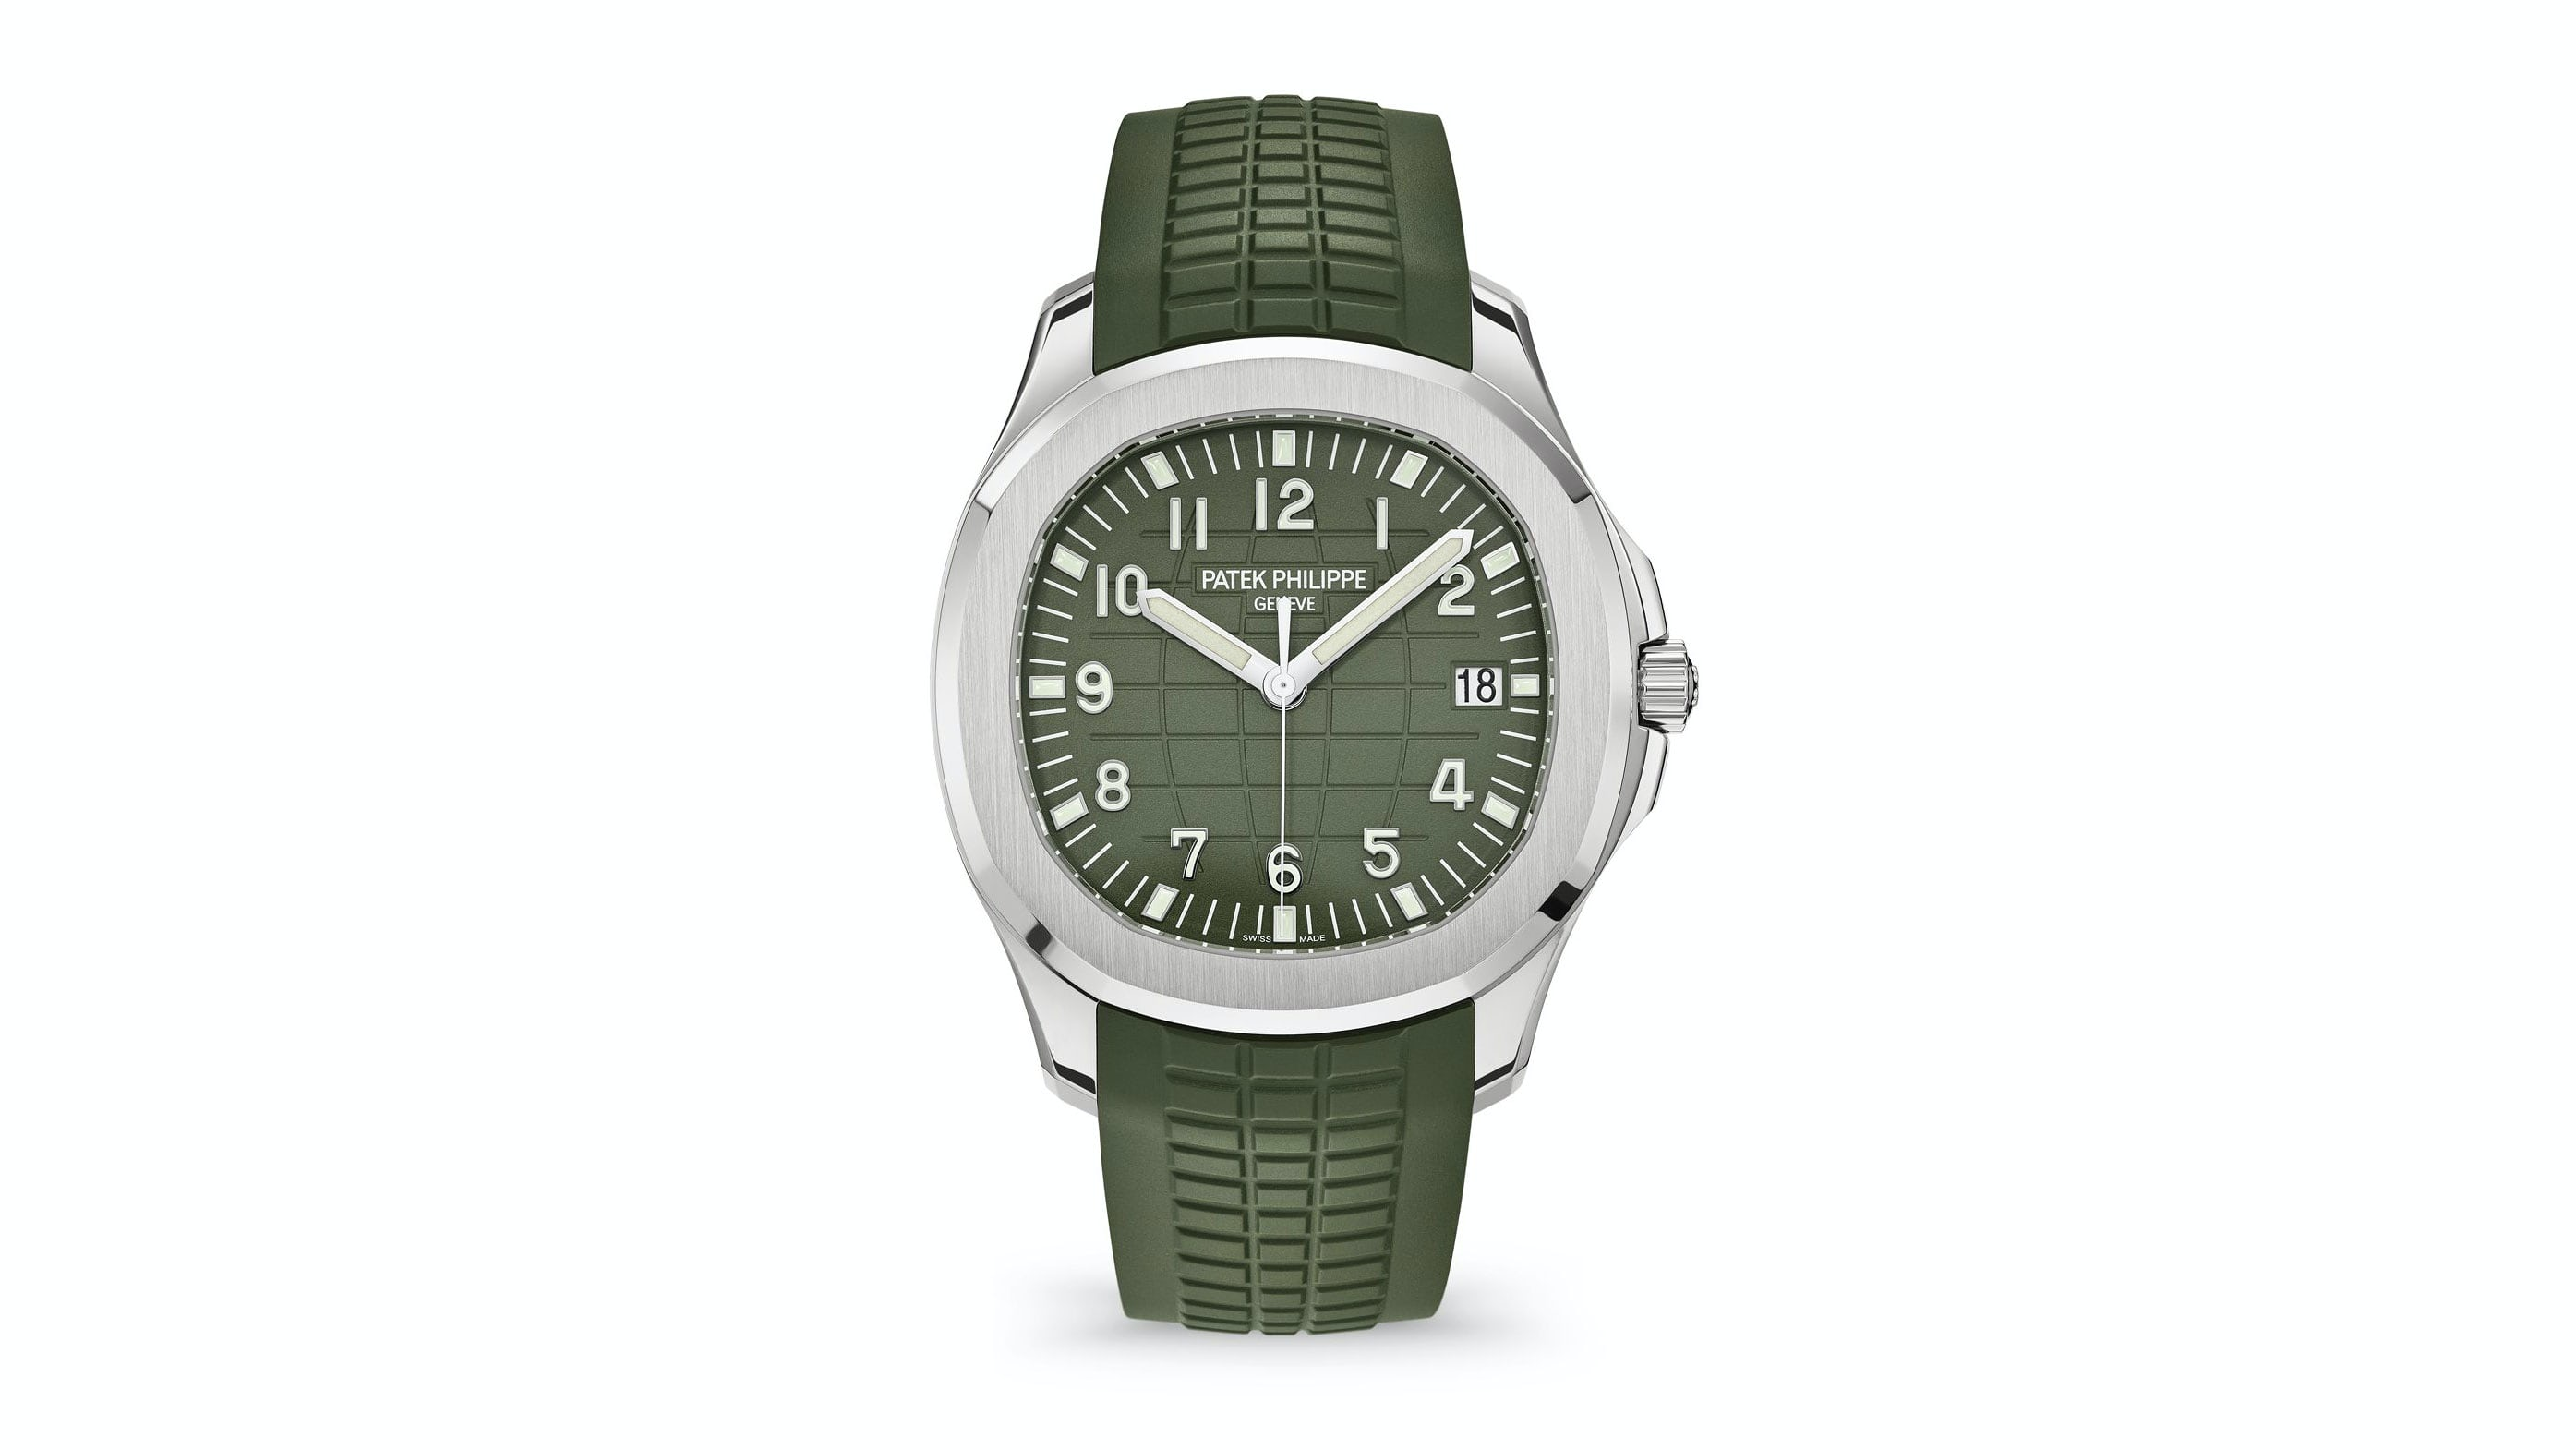 Introducing The Patek Philippe Aquanaut 5168g With Khaki Green Dial